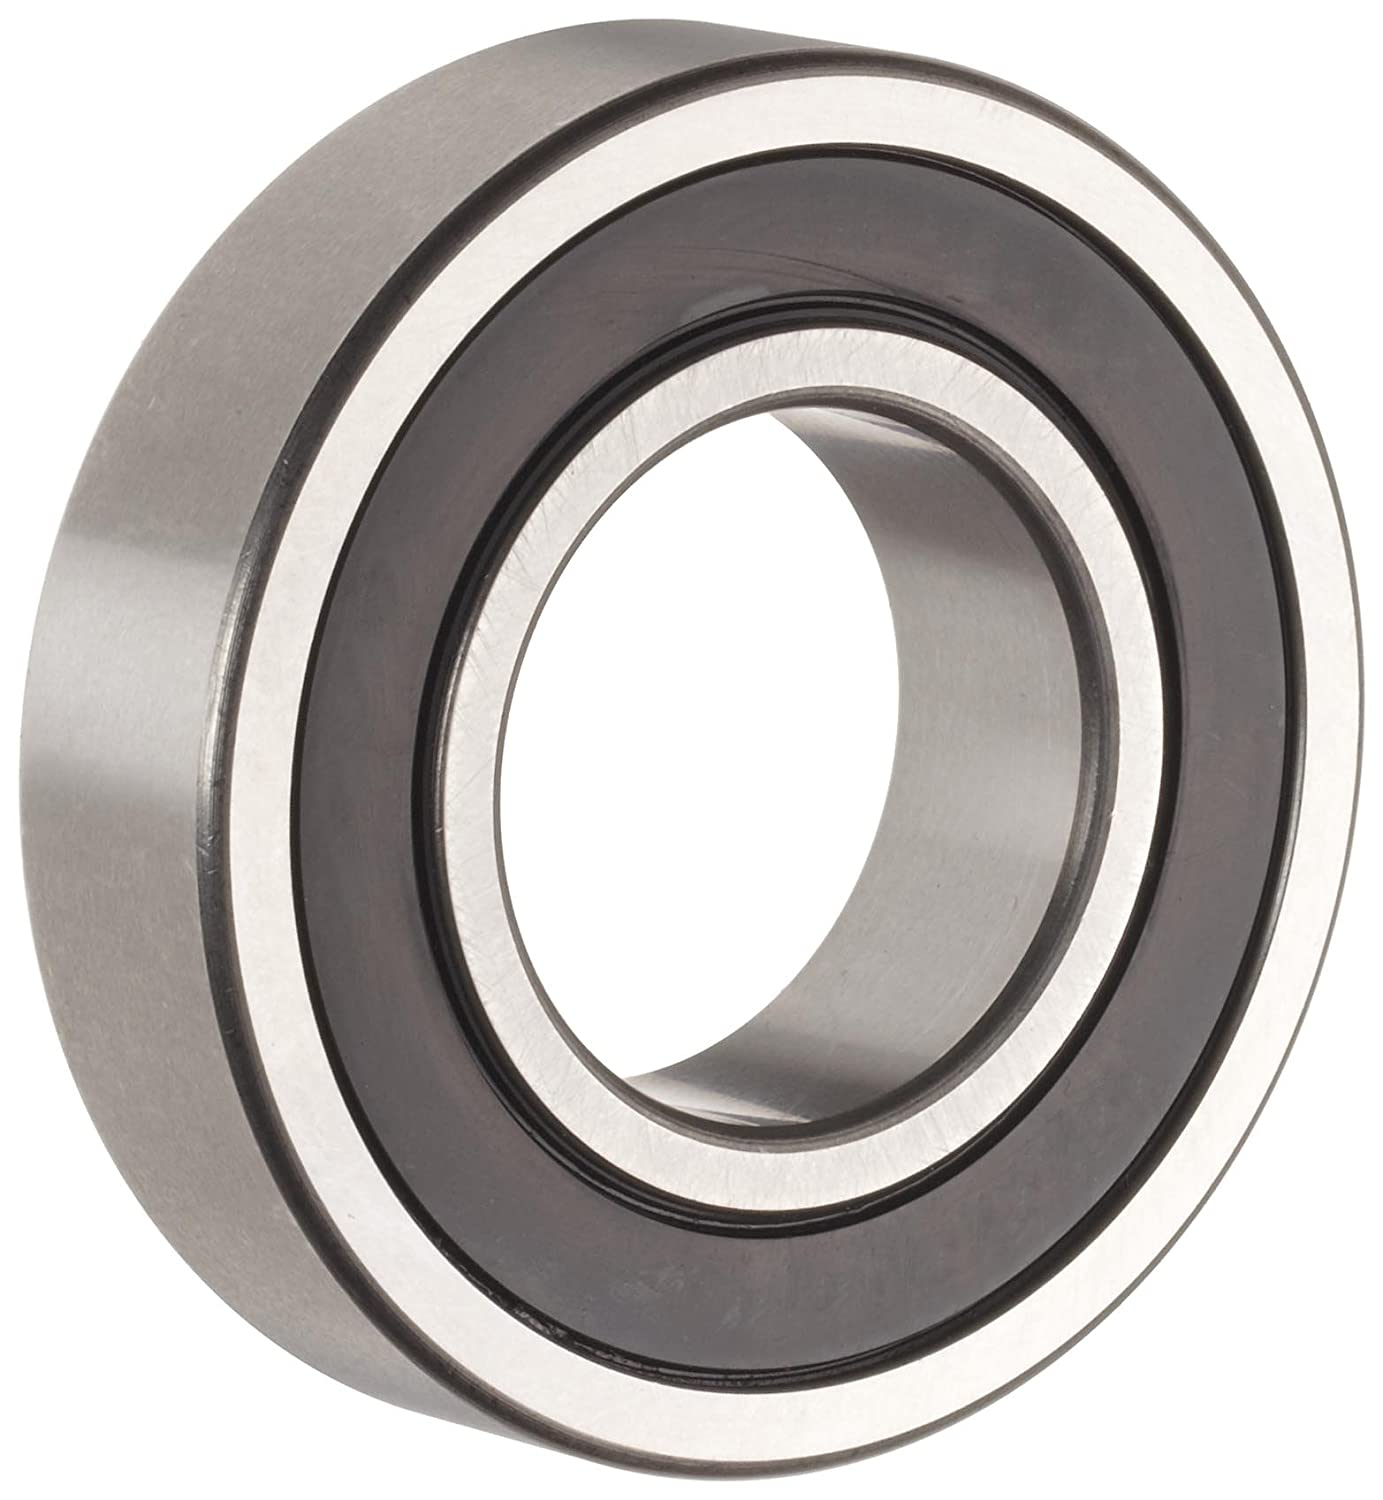 The General 1607 2RS Extra Light Inch Series Ball Bearing, Double Sealed, No Snap Ring, Inch, 7/16' ID, 29/32' OD, 5/16' Width, Max RPM, 291 lbs Static Load Capacity, 607 lbs Dynamic Load Capacity 7/16 ID 29/32 OD 5/16 Width